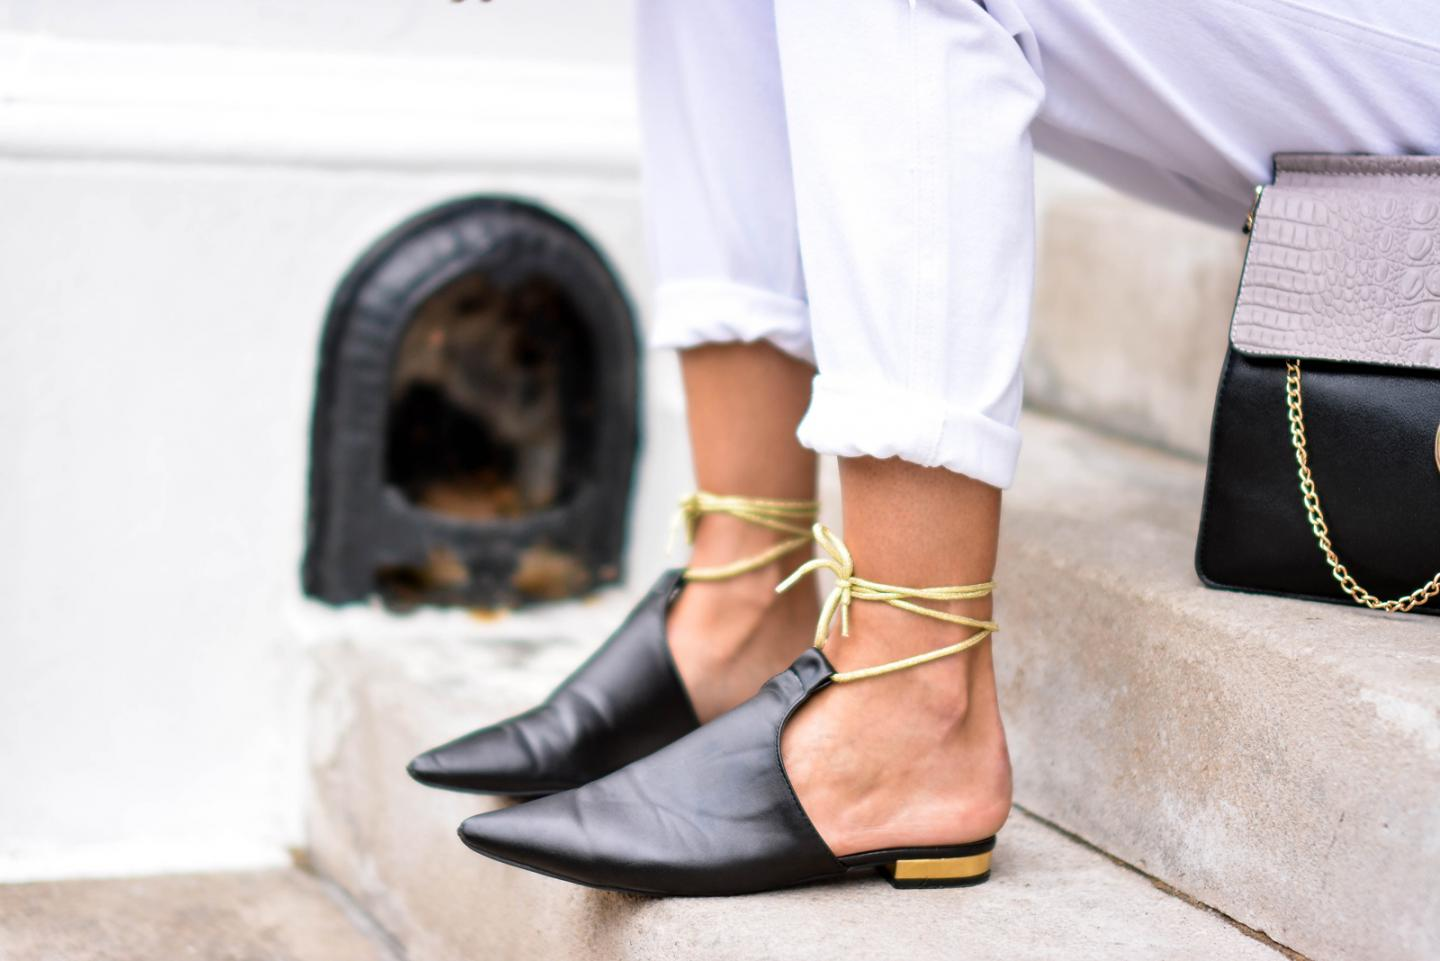 EJSTYLE - Emma Hill wears white ripped boyfriend jeans, black gold ankle tie chanel style mules flats